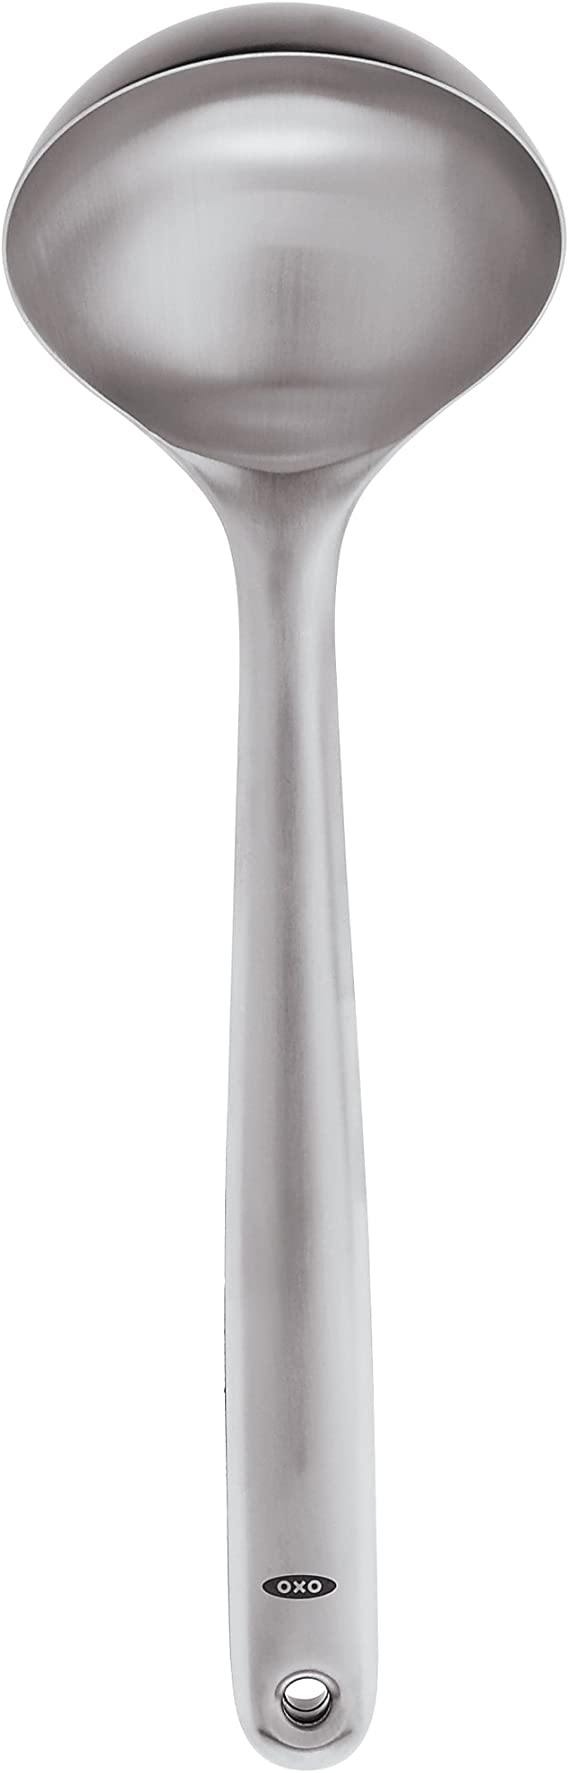 Silver Oxo Soup ladle of Stainless Steel Brushed 9.4 x 7.62 x 33.53 cm